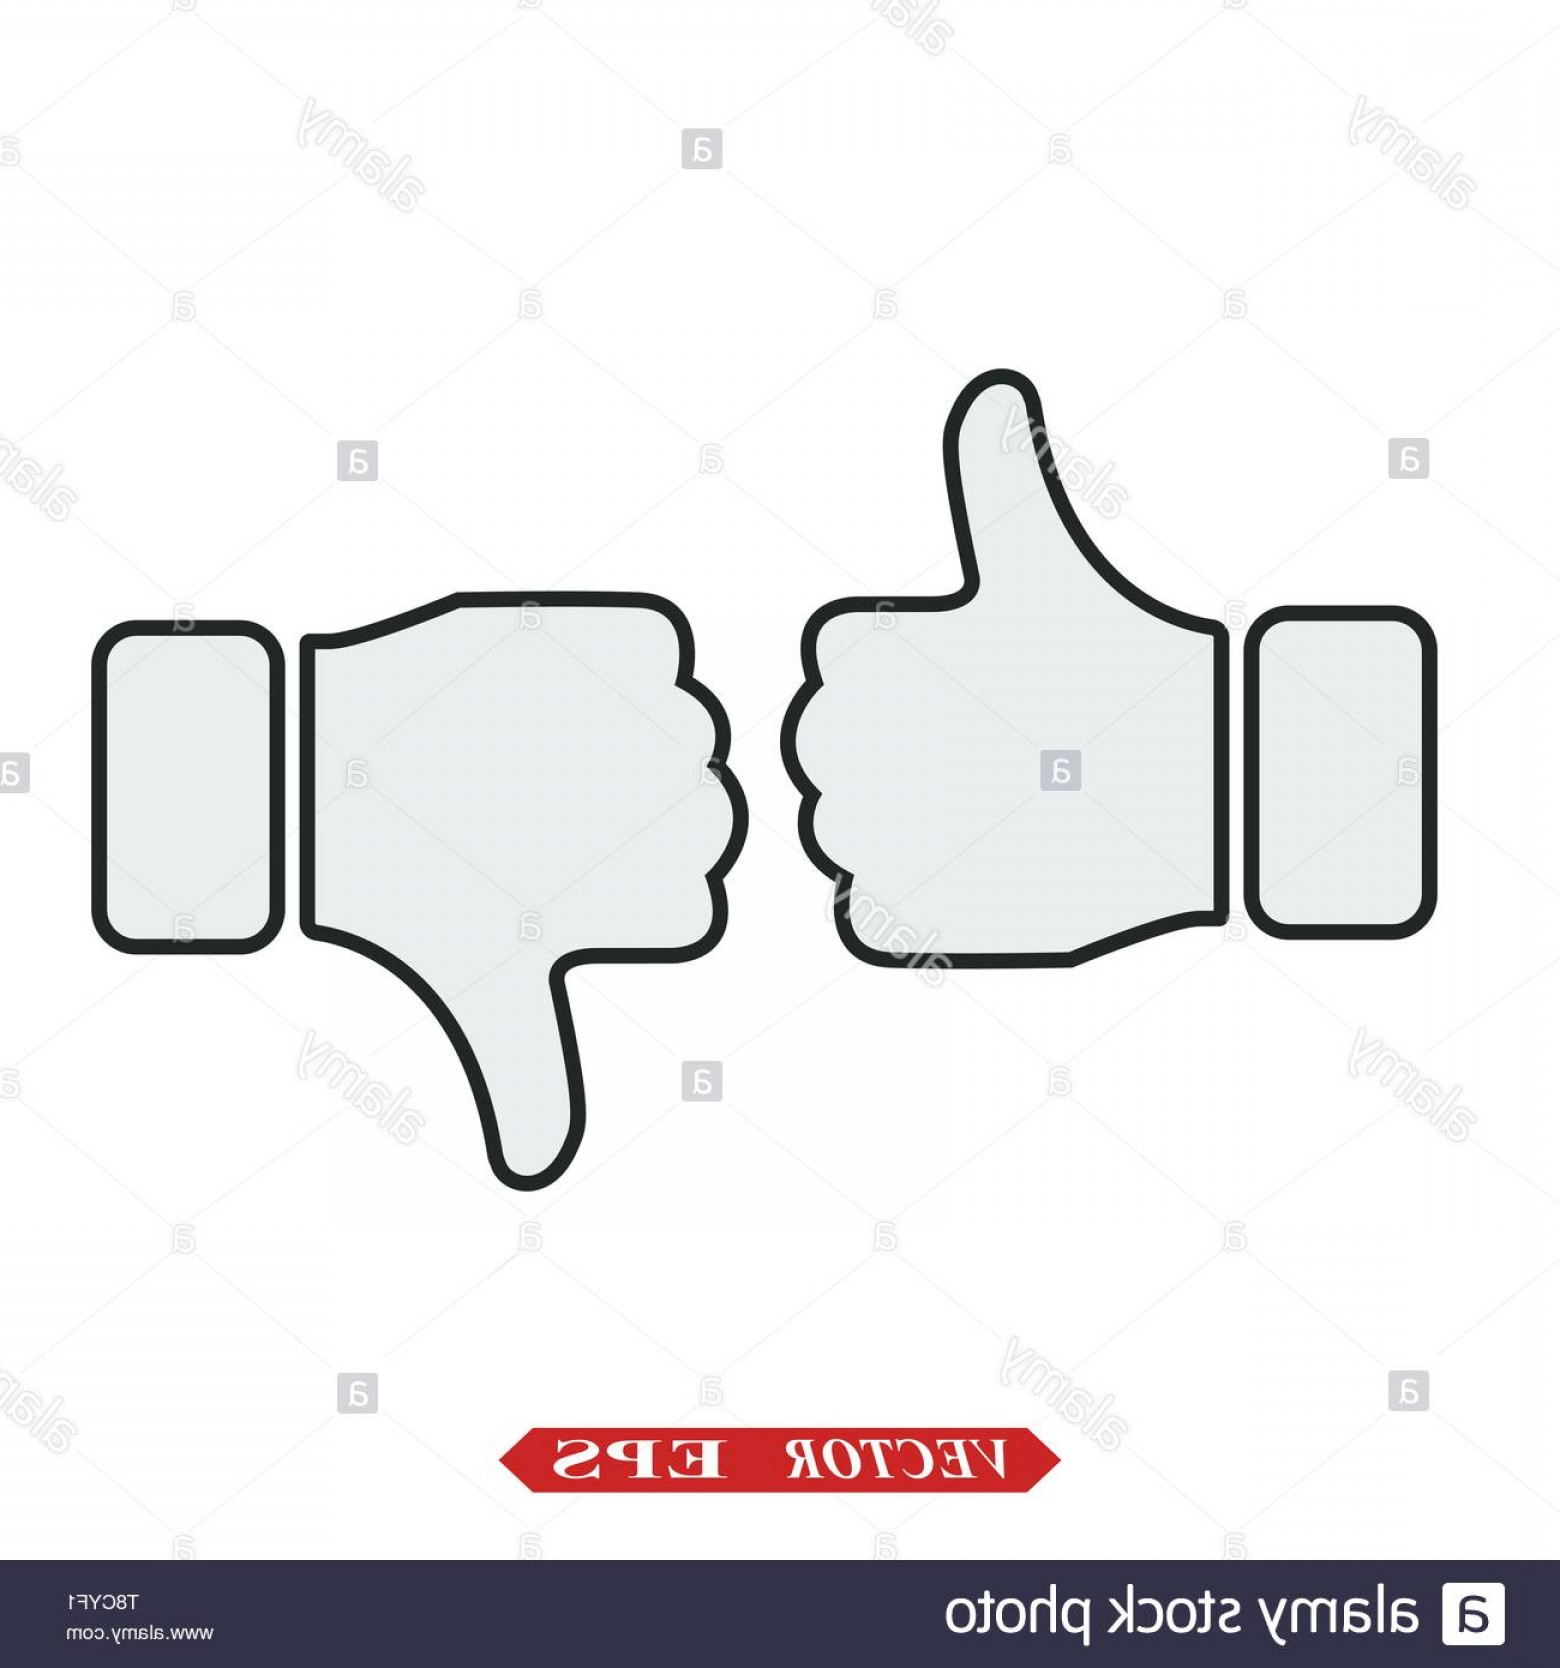 Vector Thumbs Up Down: Like Icon Vector Thumbs Up Icon Social Media Icon Like And Dislike Icon Thumbs Up And Thumbs Down Image